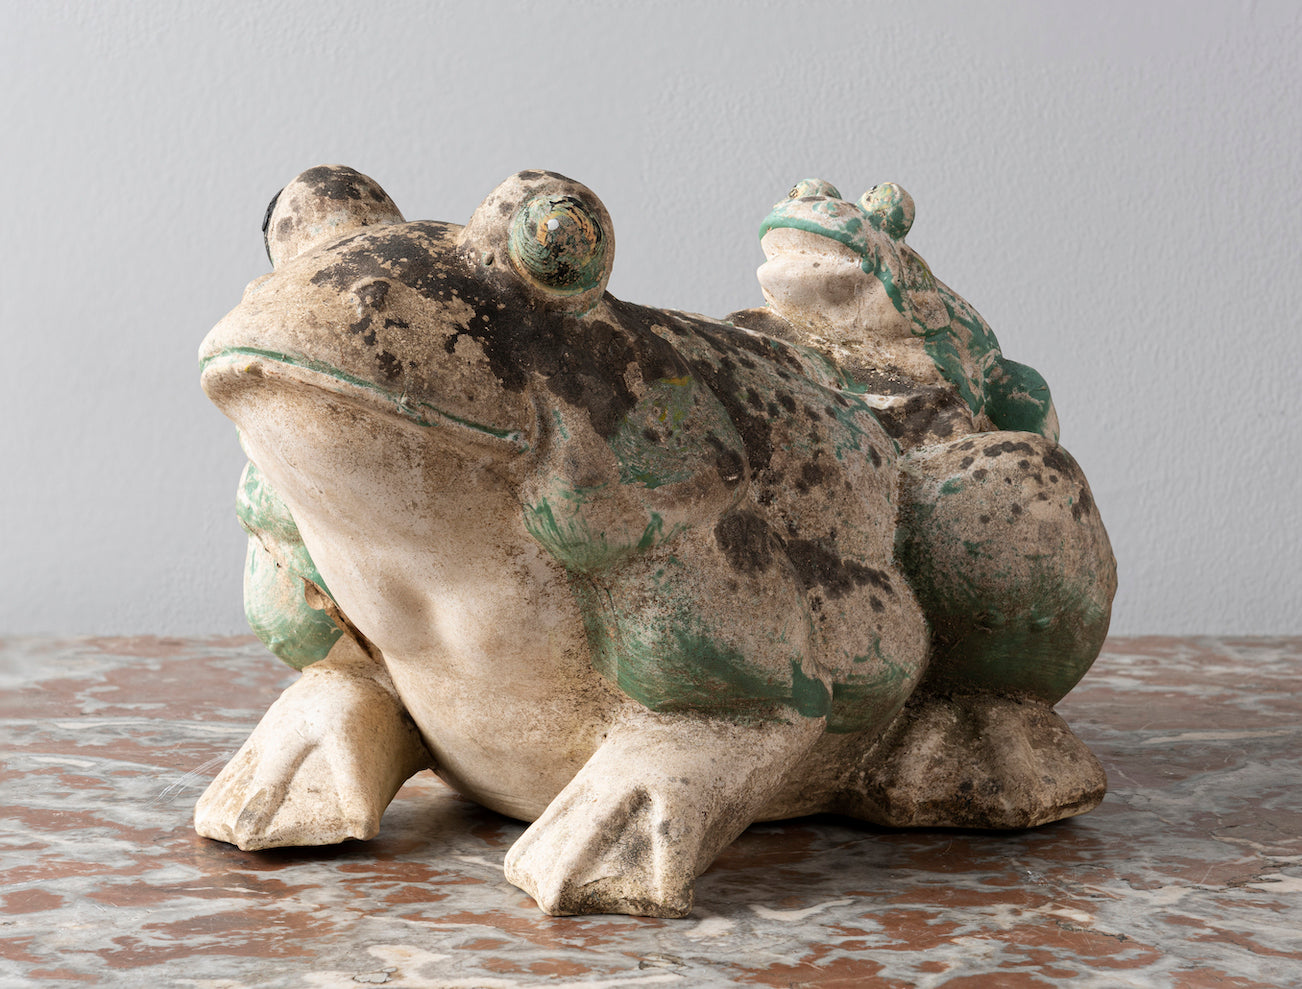 SOLD A decorative and charming painted ceramic garden frog